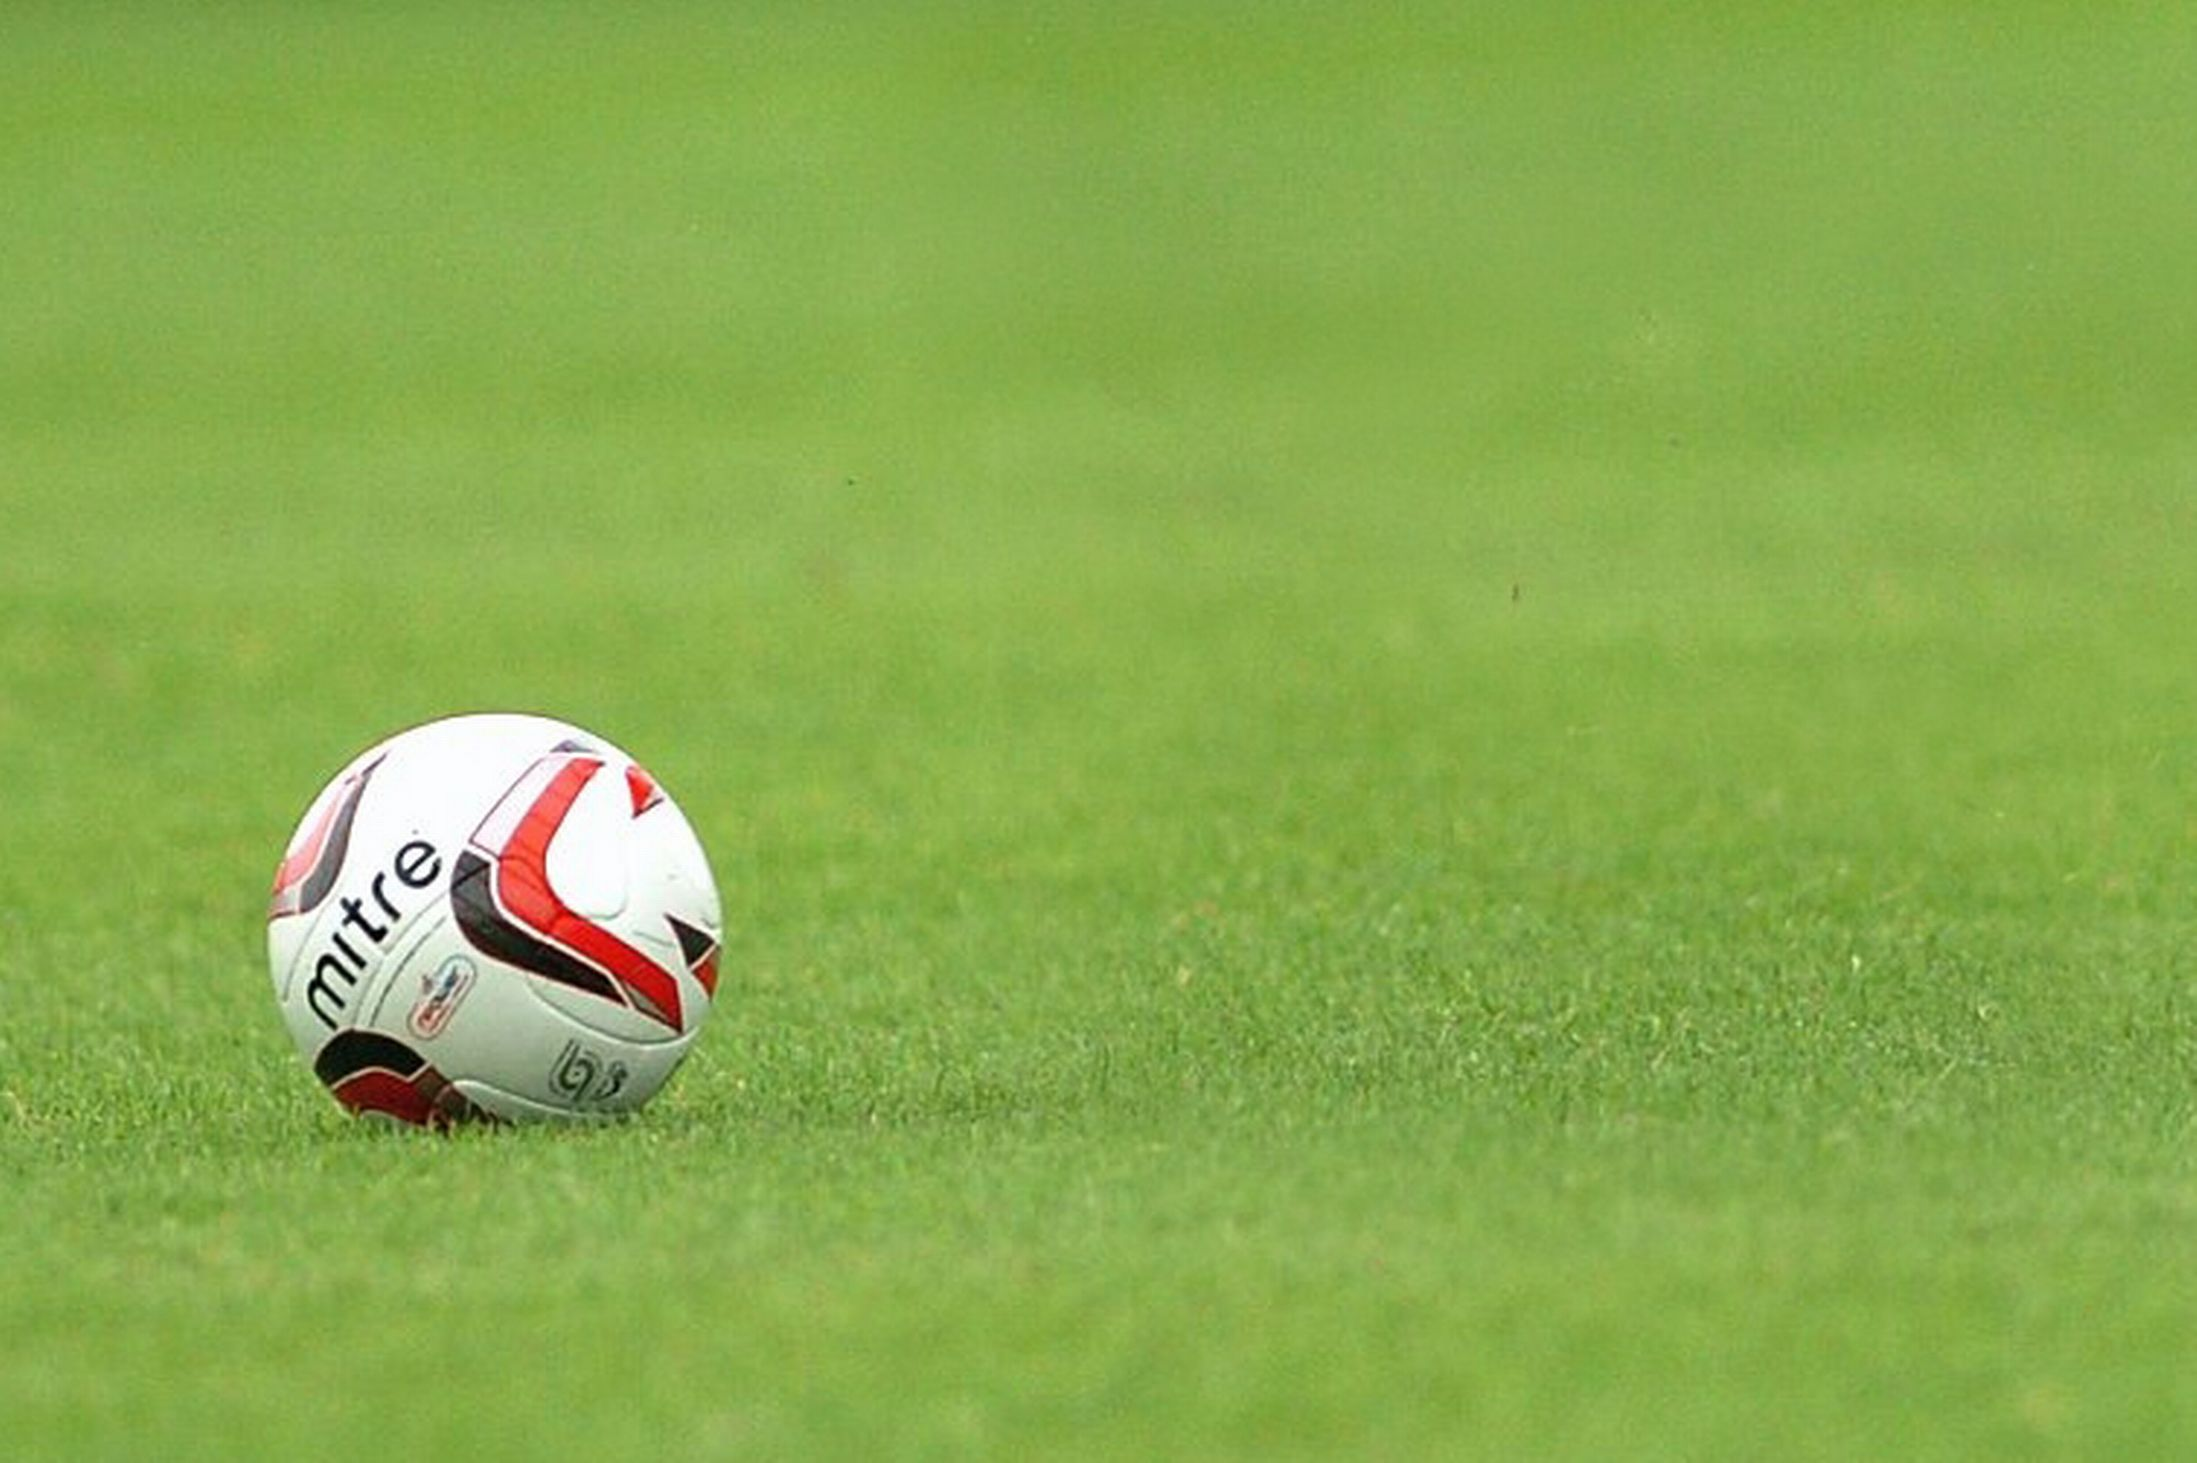 Football-on-pitch-1239682